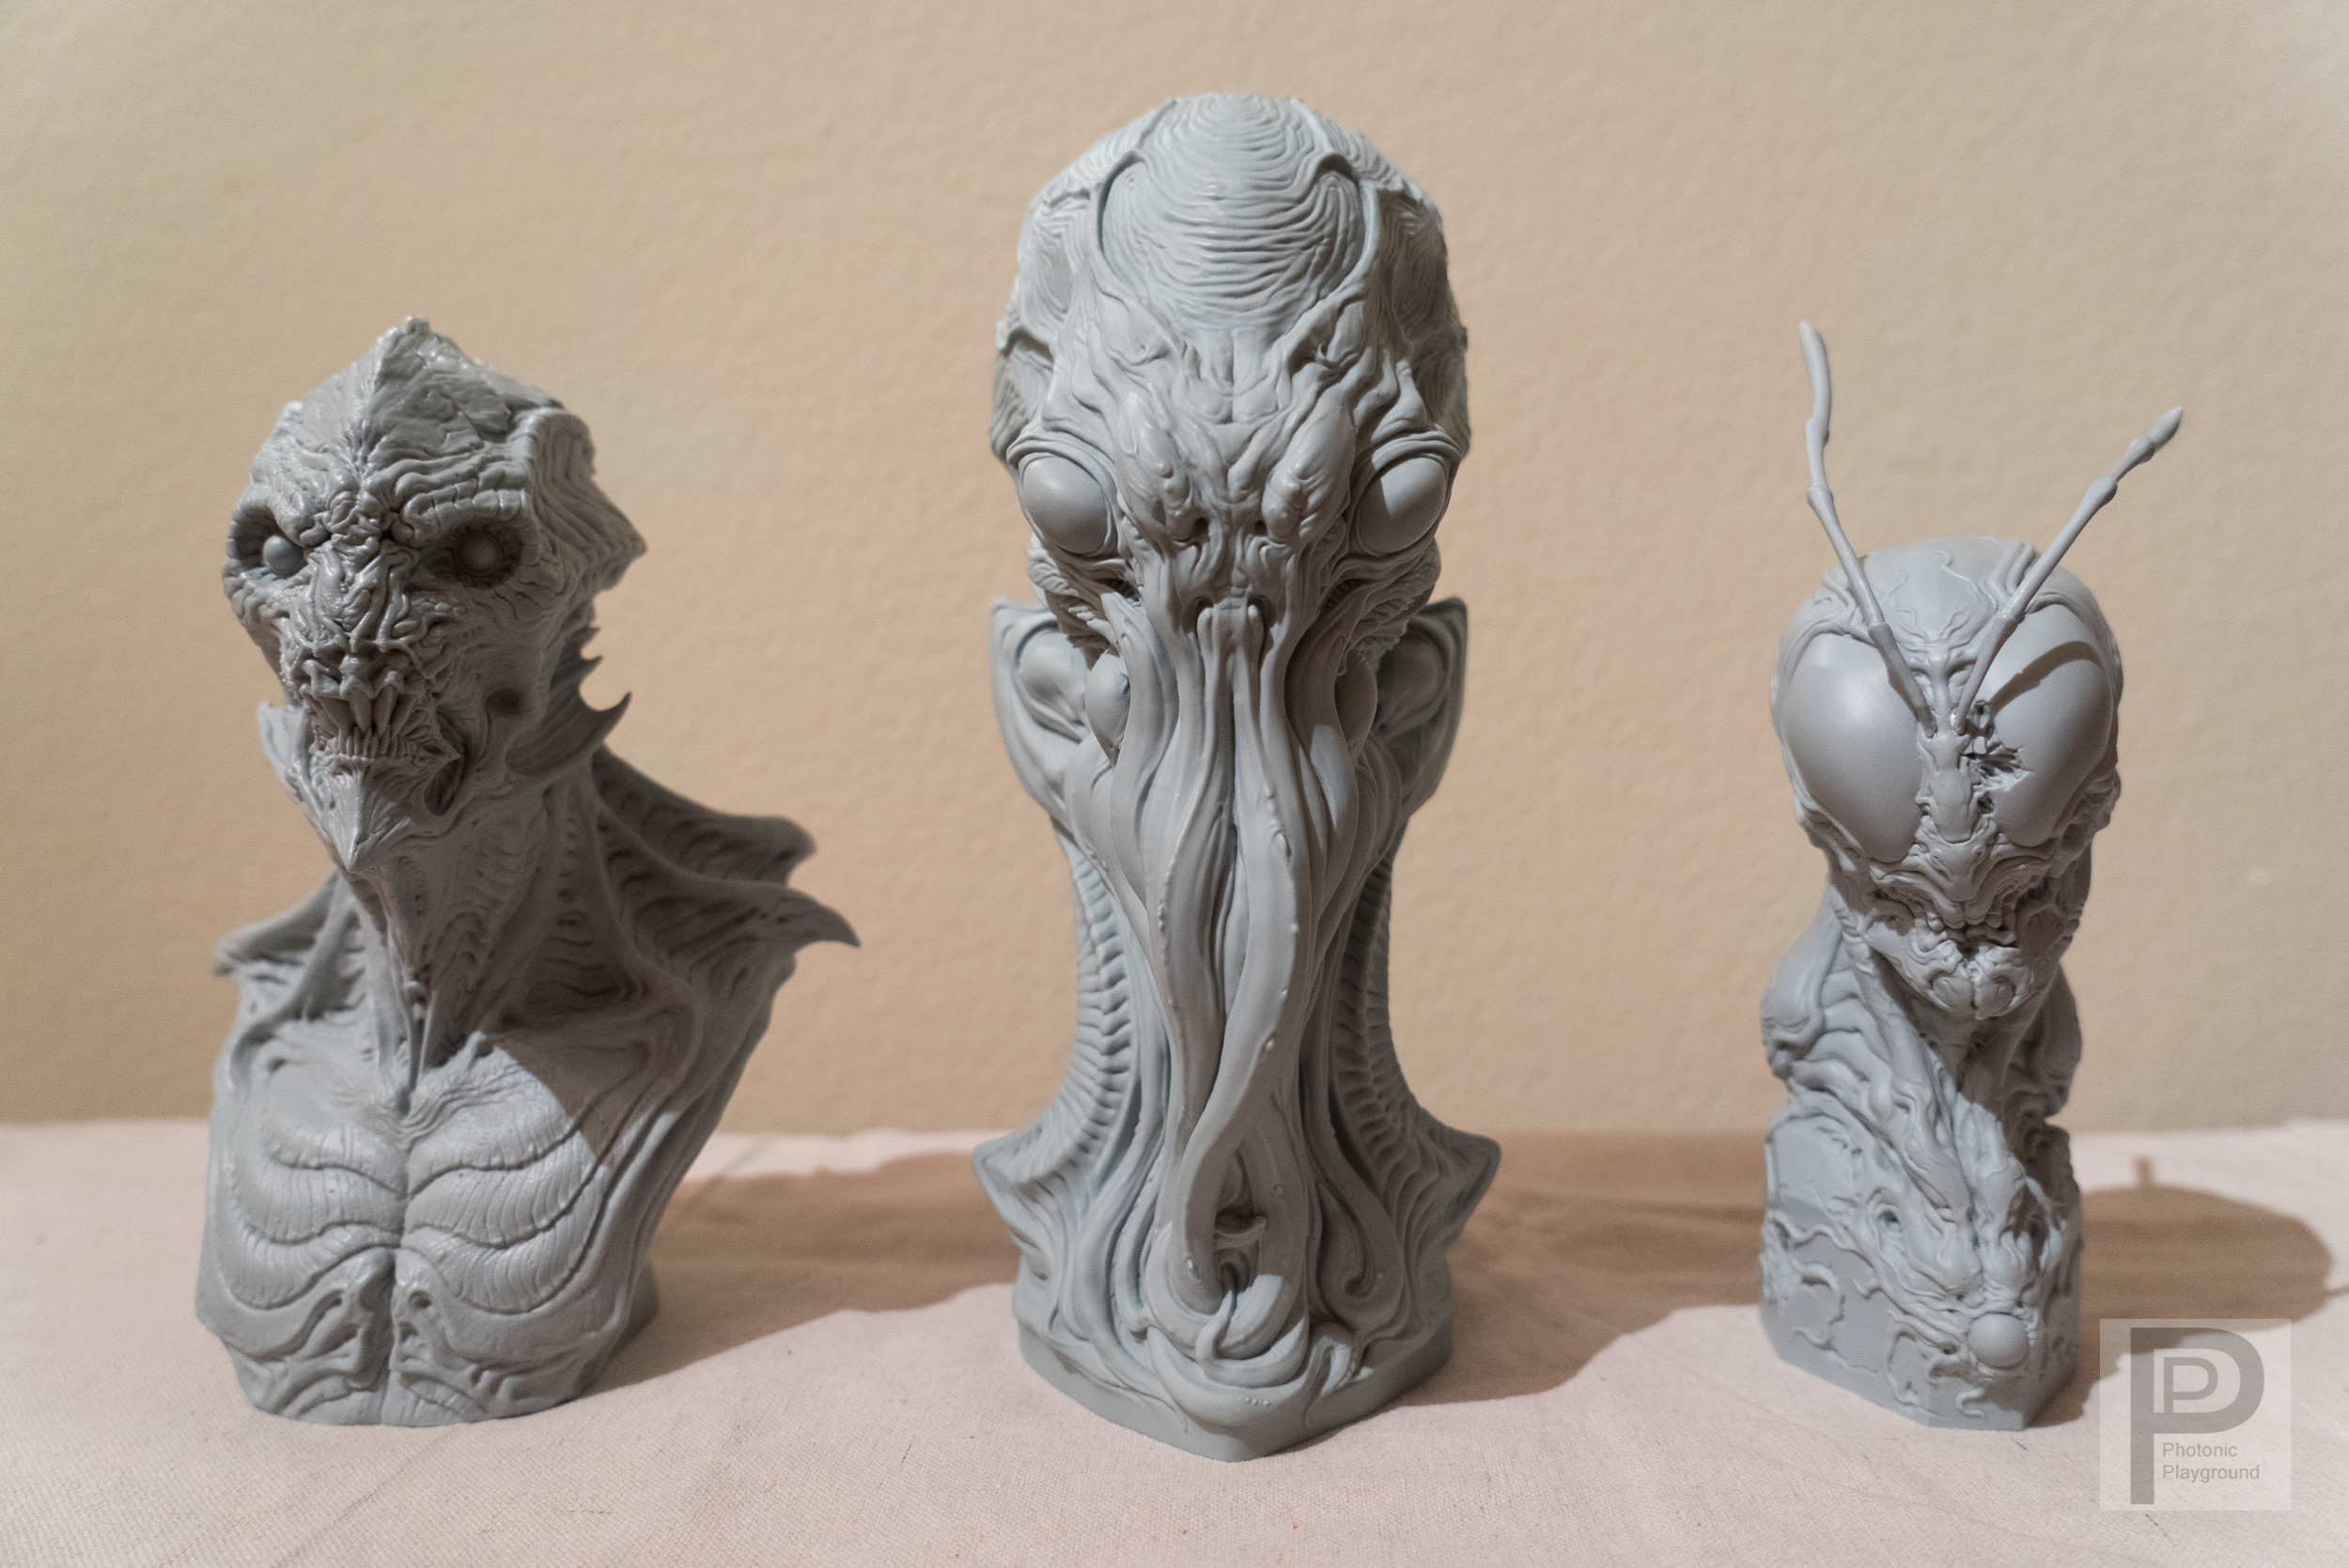 Gillman, Cthulhu and Hopper busts by Dominic Qwek in scale comparison together (front)